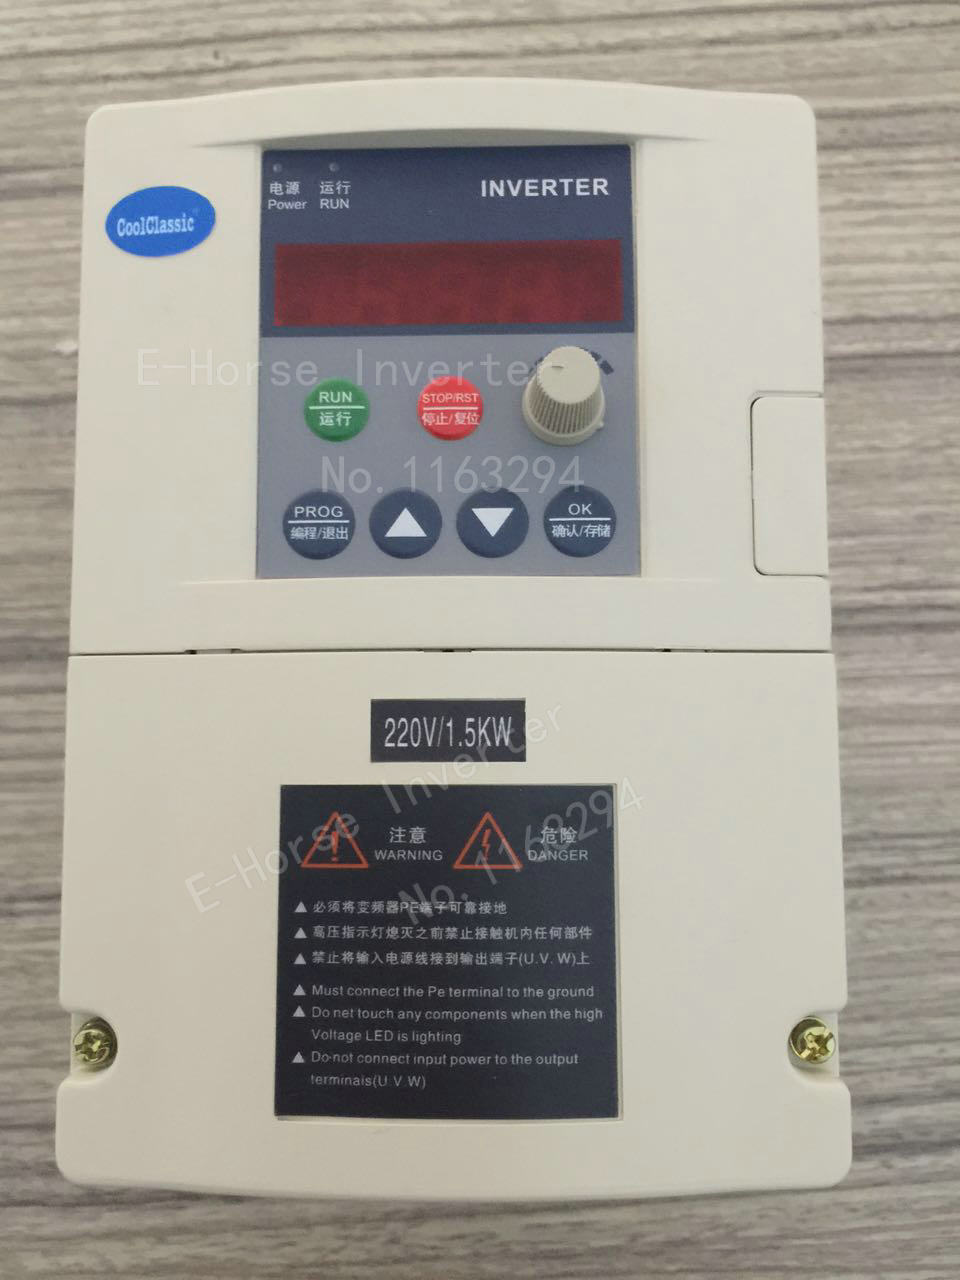 Frequency Converter ZW S2015 1 5KW CoolClassic Inverter Single Phase Input And 220v 3 Phase Output